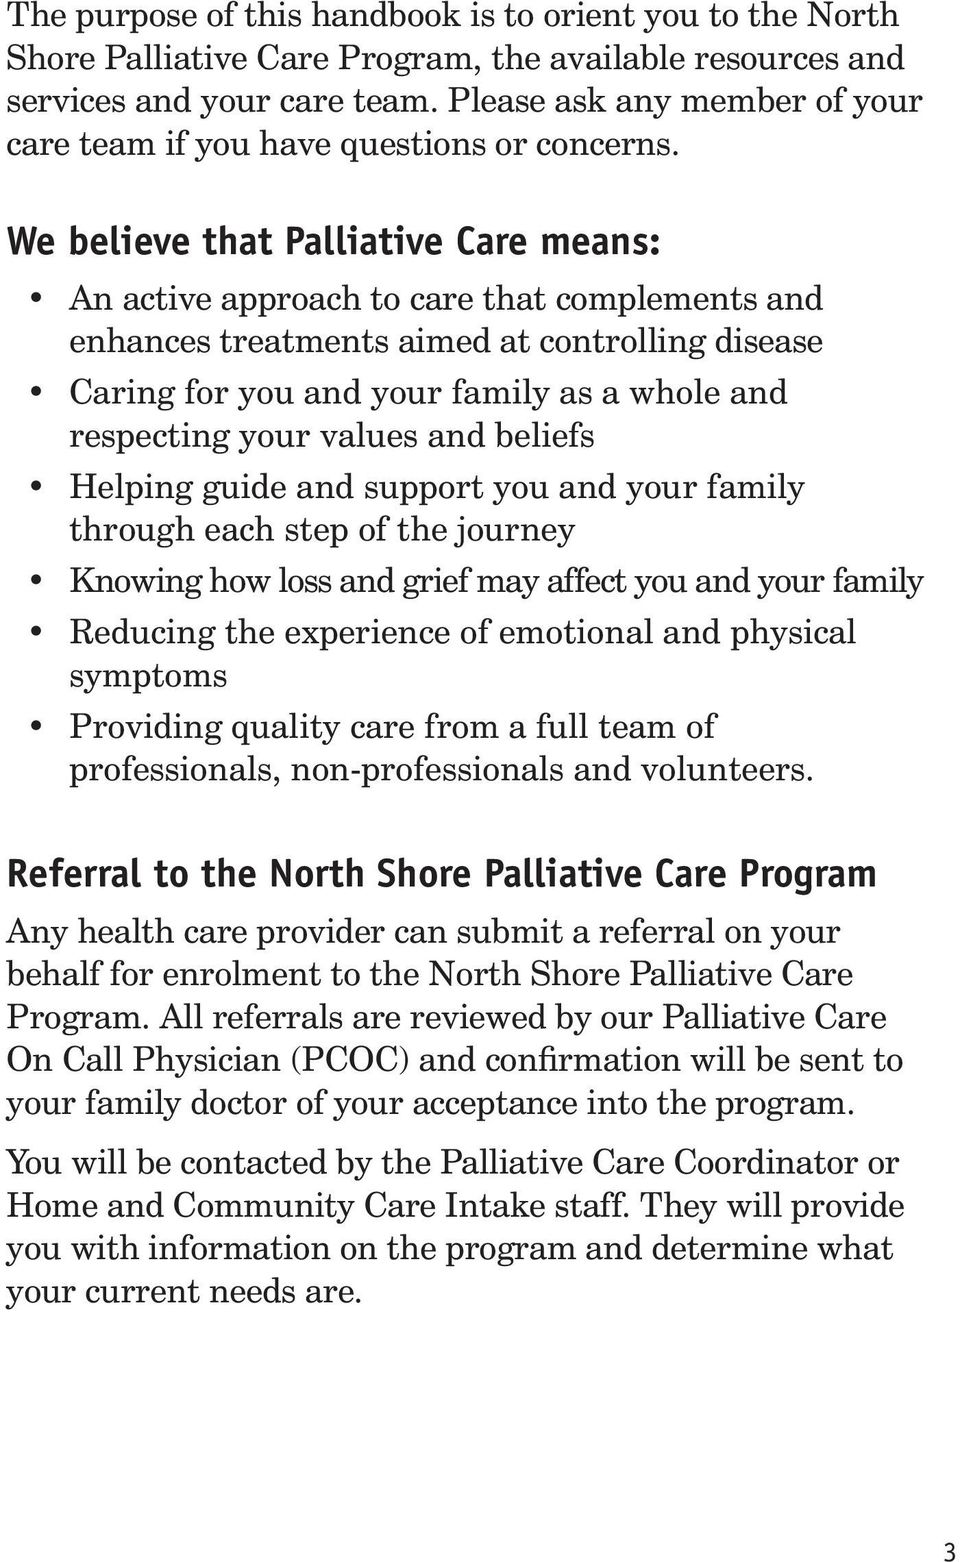 We believe that Palliative Care means: An active approach to care that complements and enhances treatments aimed at controlling disease Caring for you and your family as a whole and respecting your